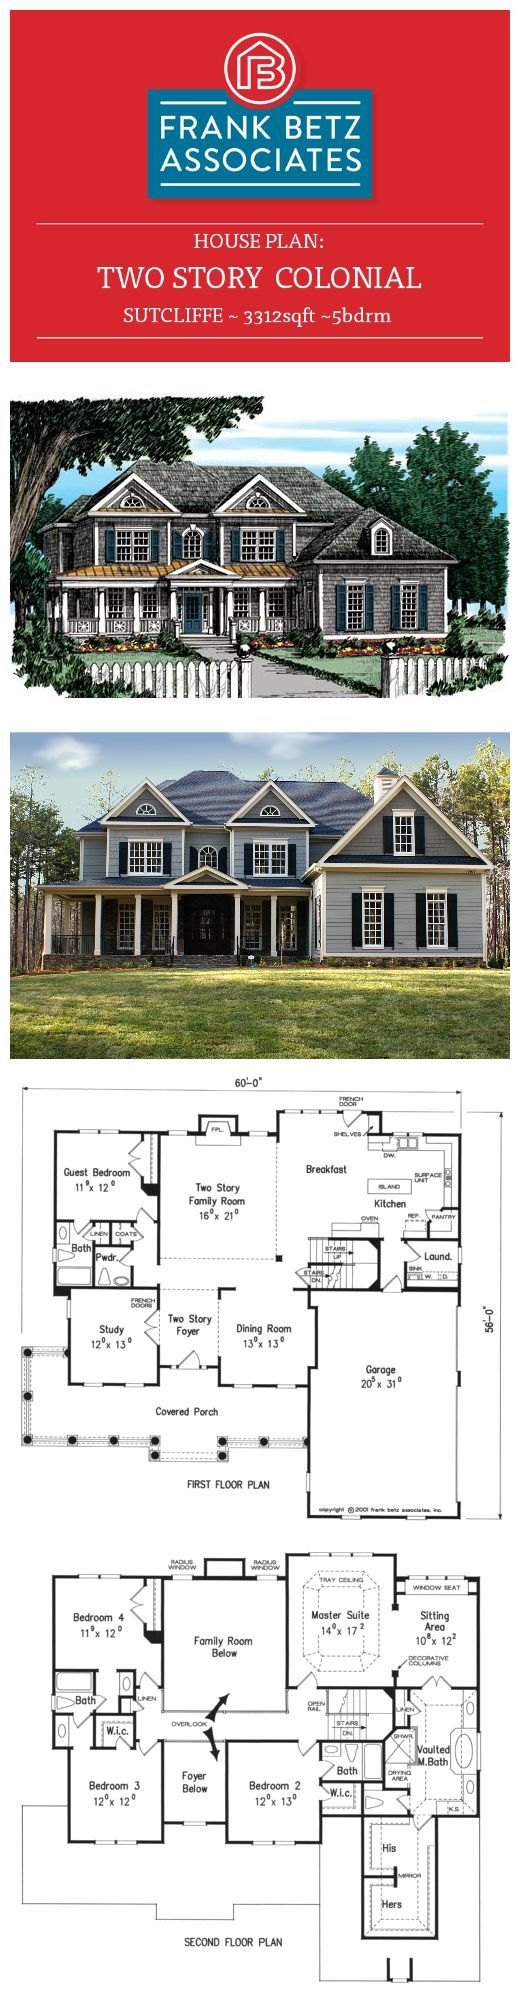 Sutcliffe: 3312sqft|5bdrm Two Story Colonial House Plan By Frank Betz  Associates Inc